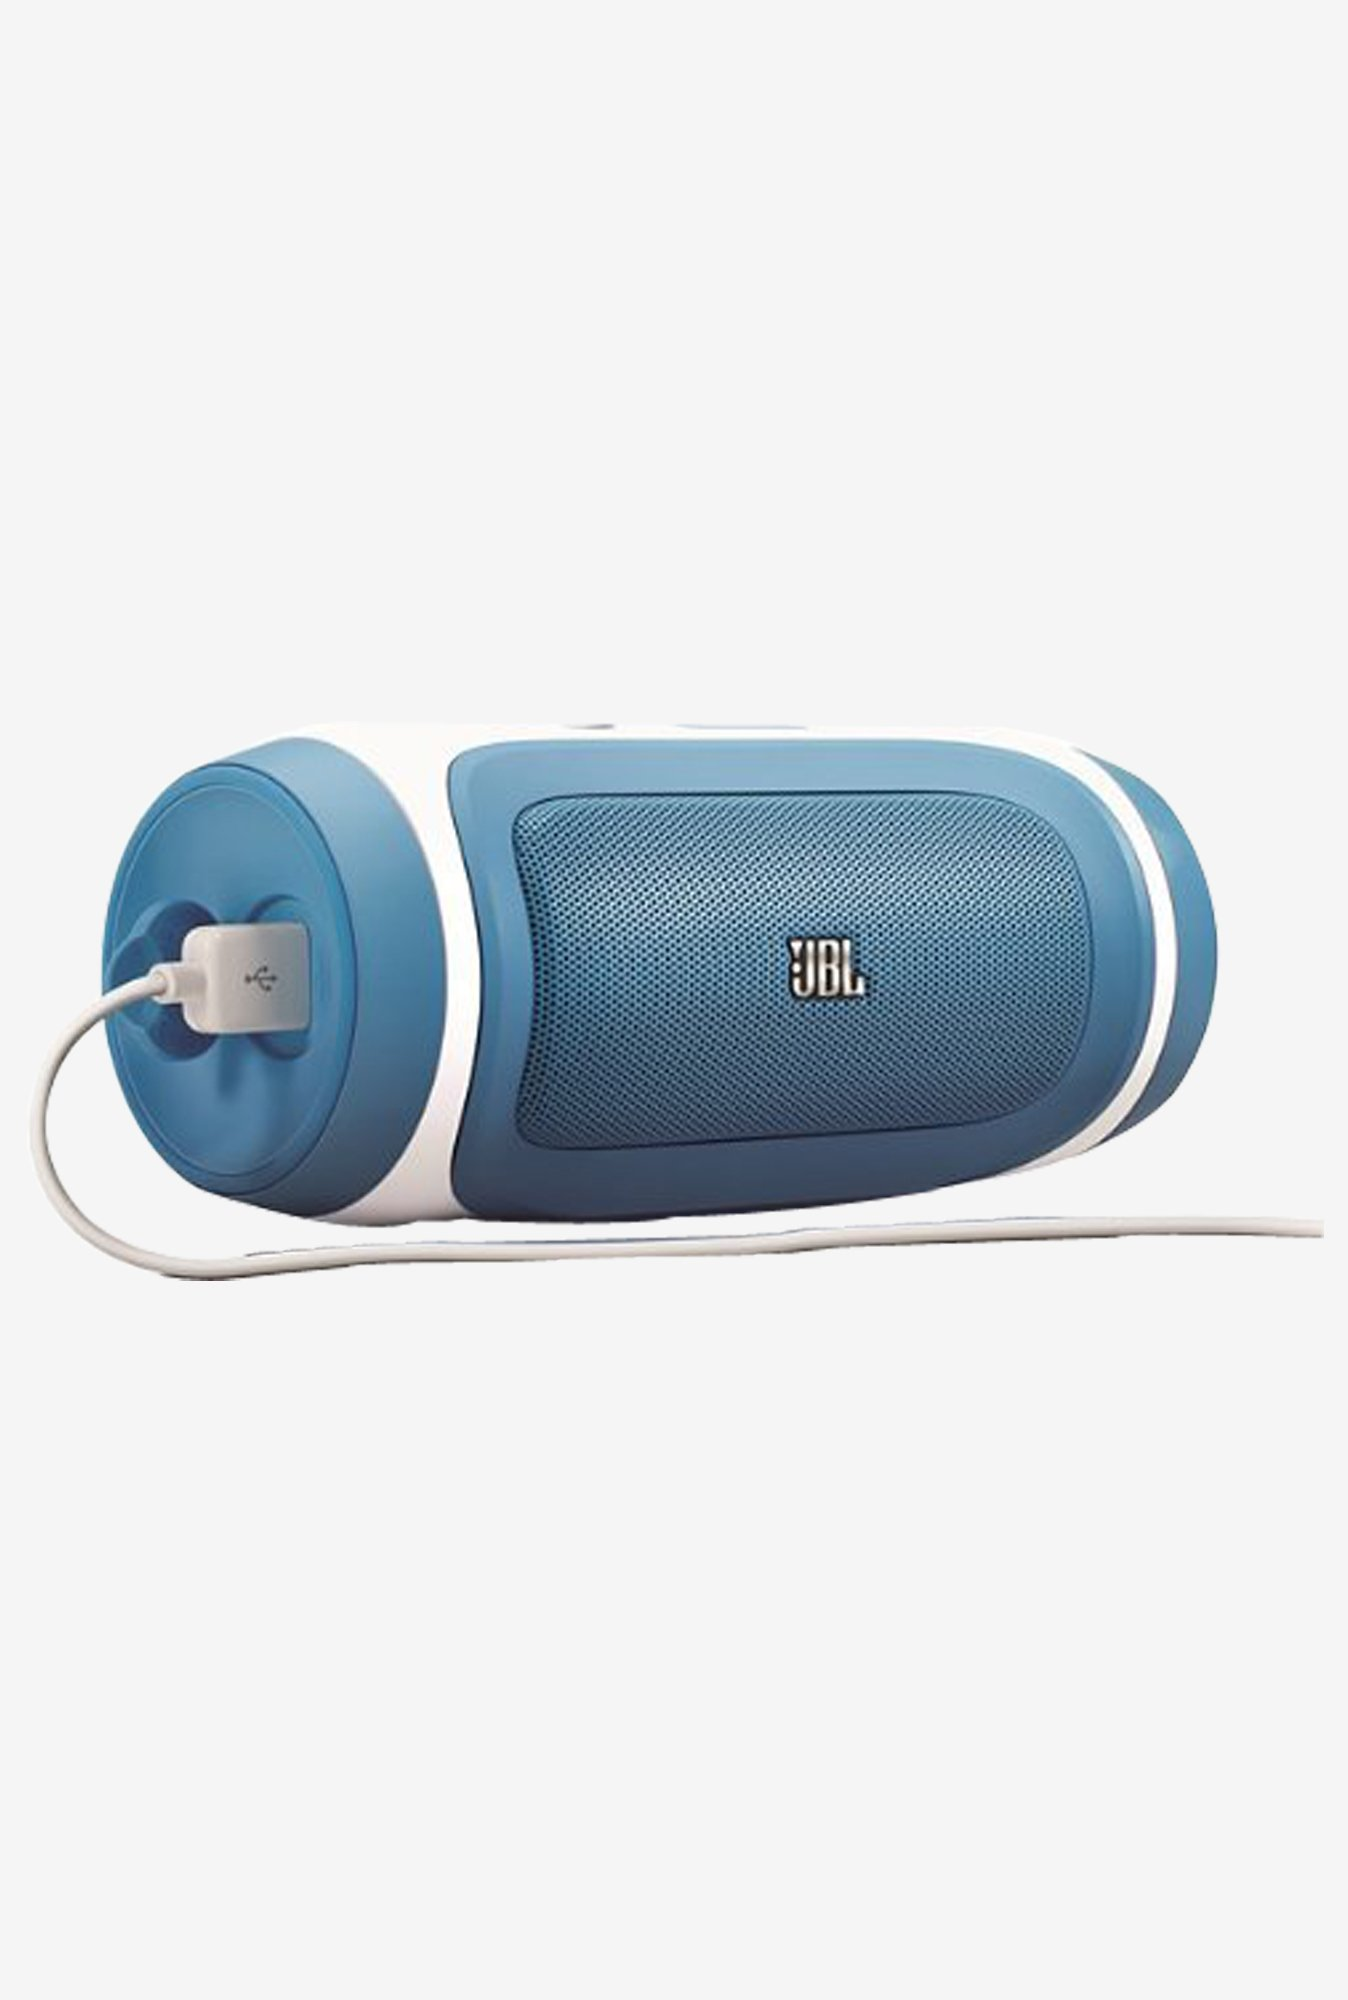 JBL Charge Portable Wireless Stereo Speaker (Blue)